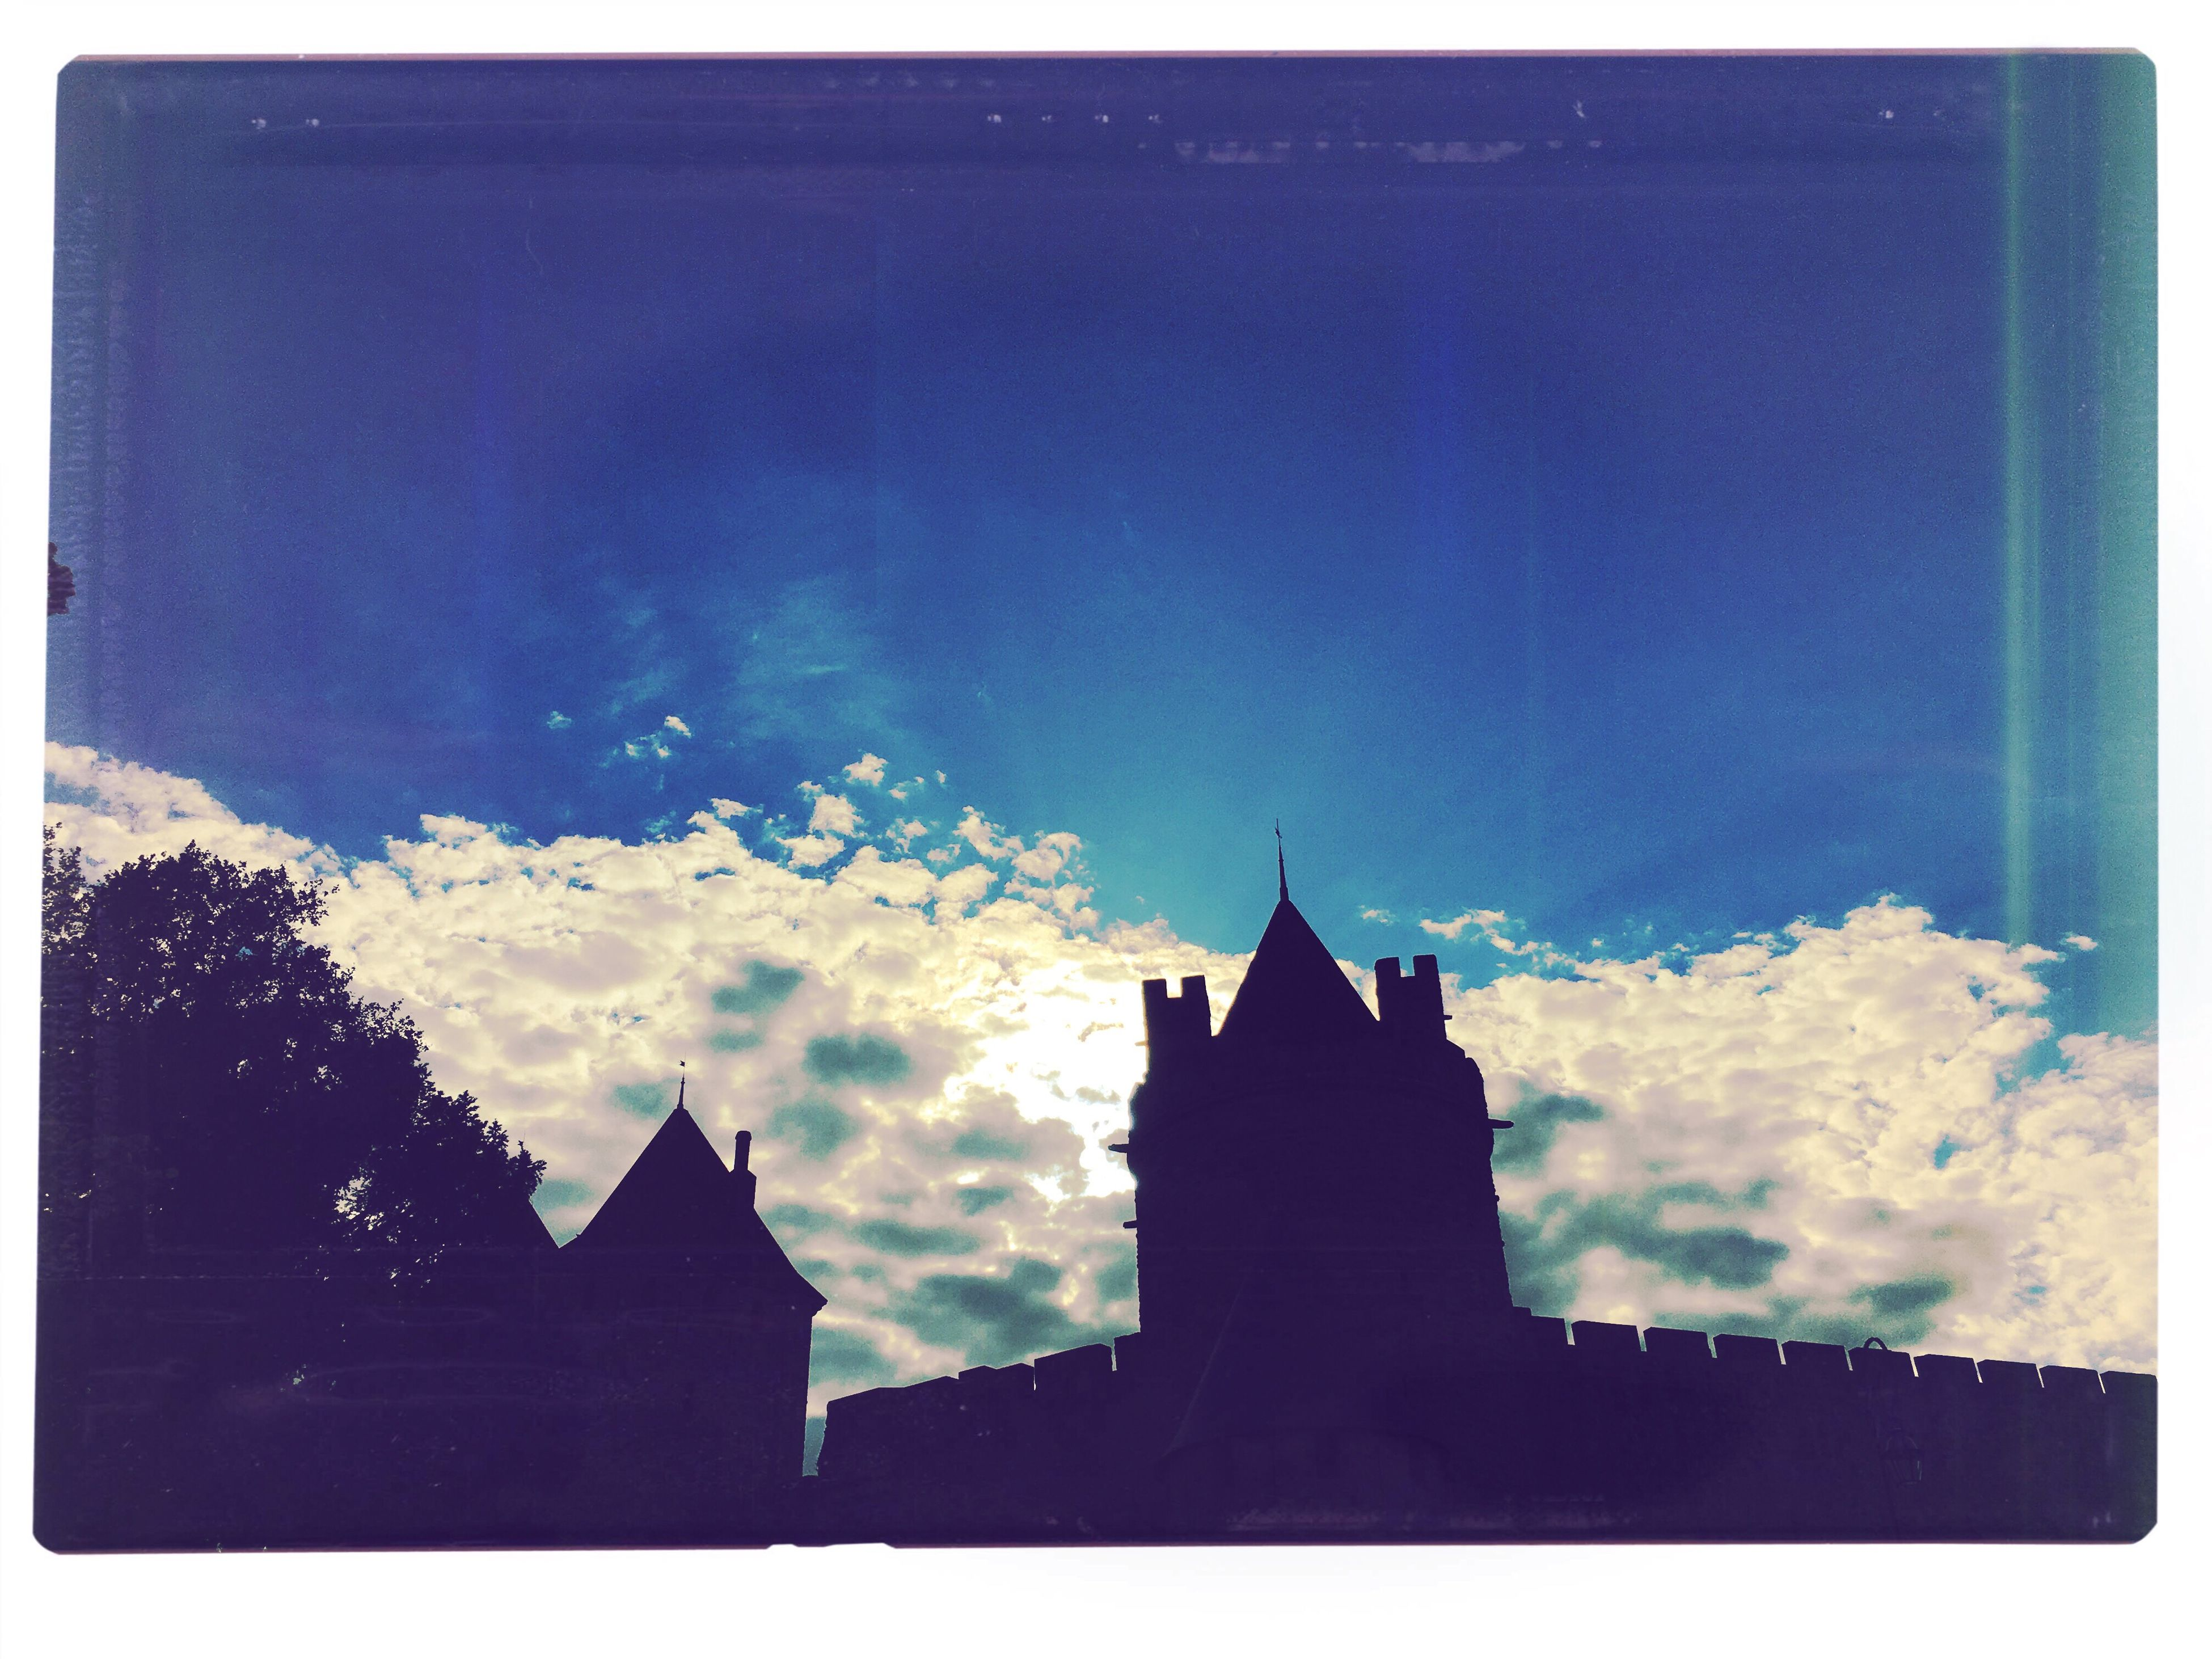 architecture, auto post production filter, built structure, transfer print, silhouette, building exterior, outline, low angle view, sky, blue, outdoors, cloud, high section, no people, place of worship, steeple, cloud - sky